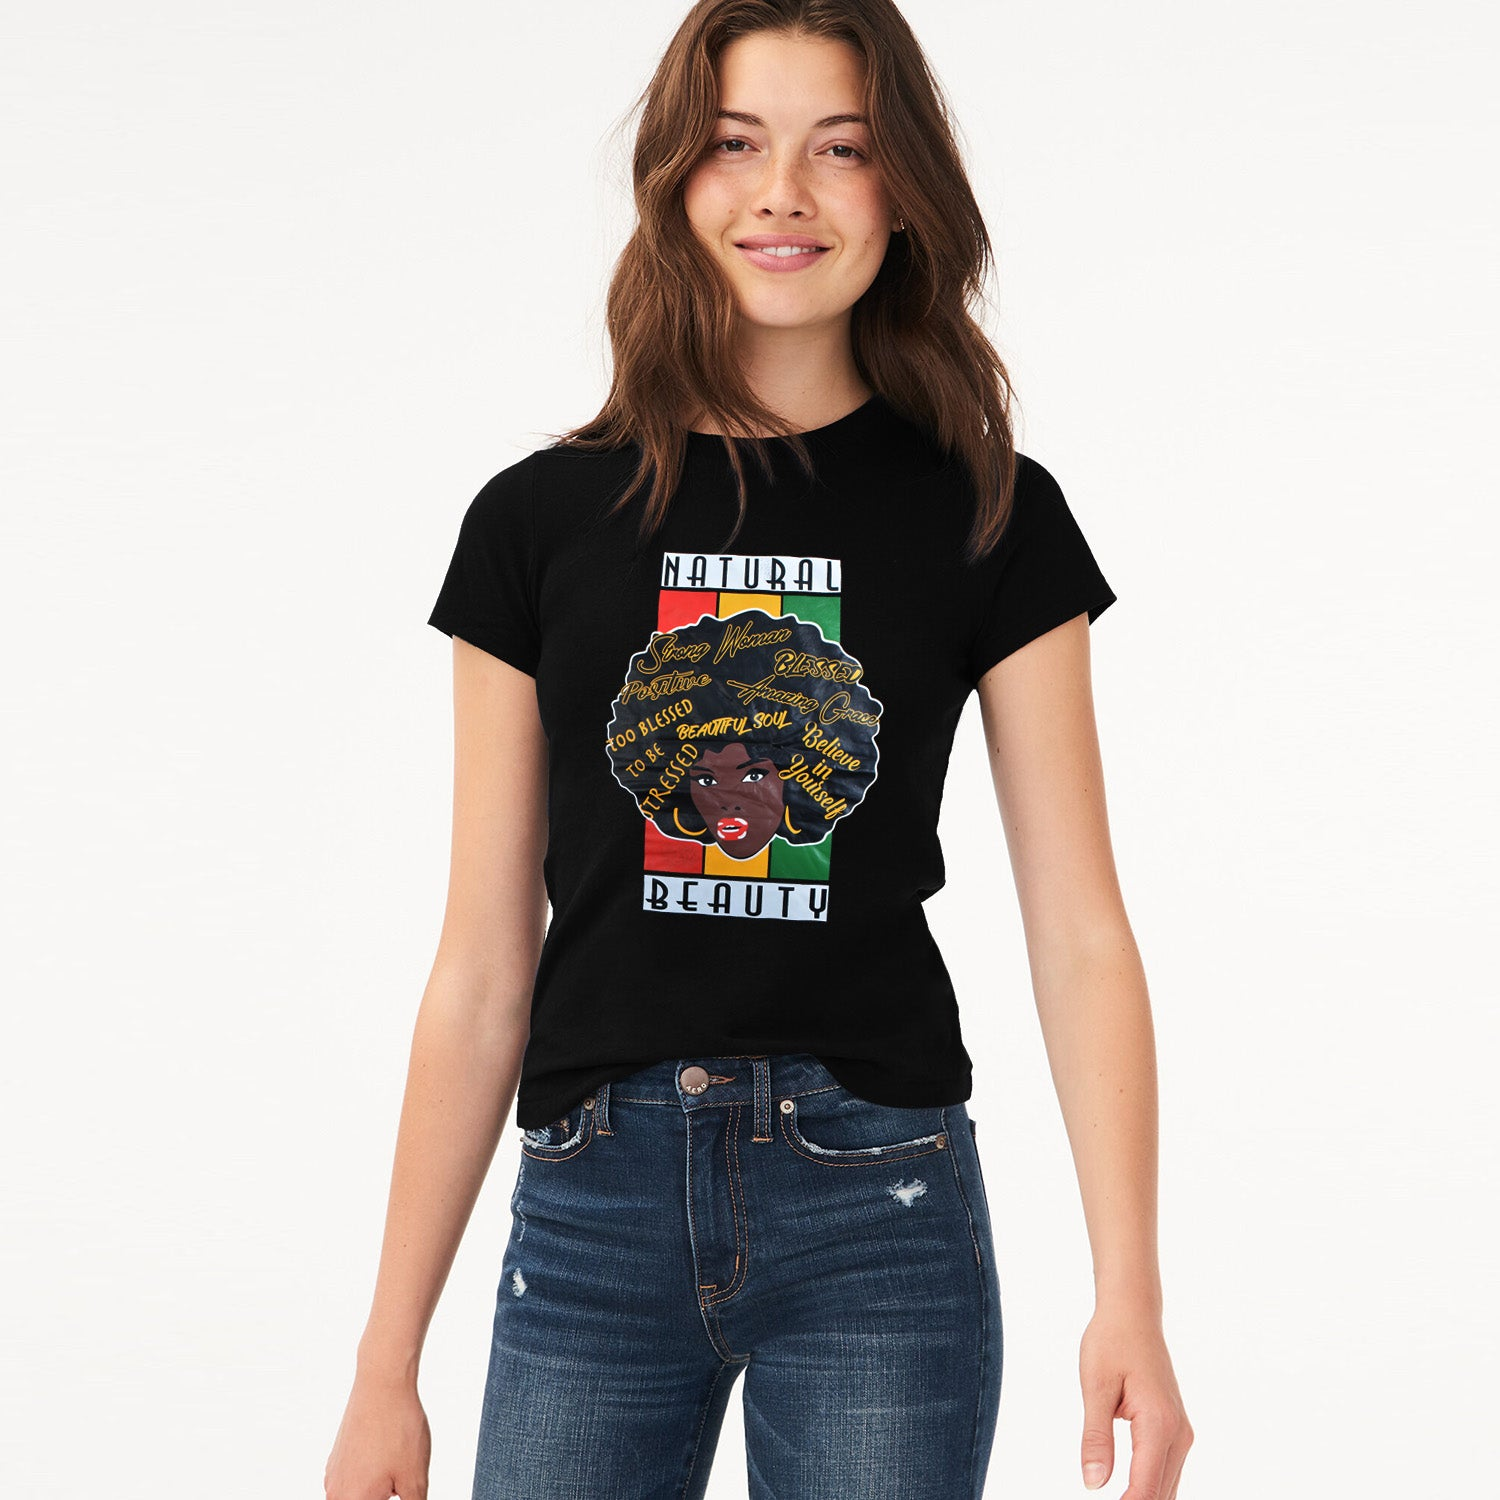 Here Kitty Single Jersey Crew Neck Tee Shirt For Women-Black-BE9652